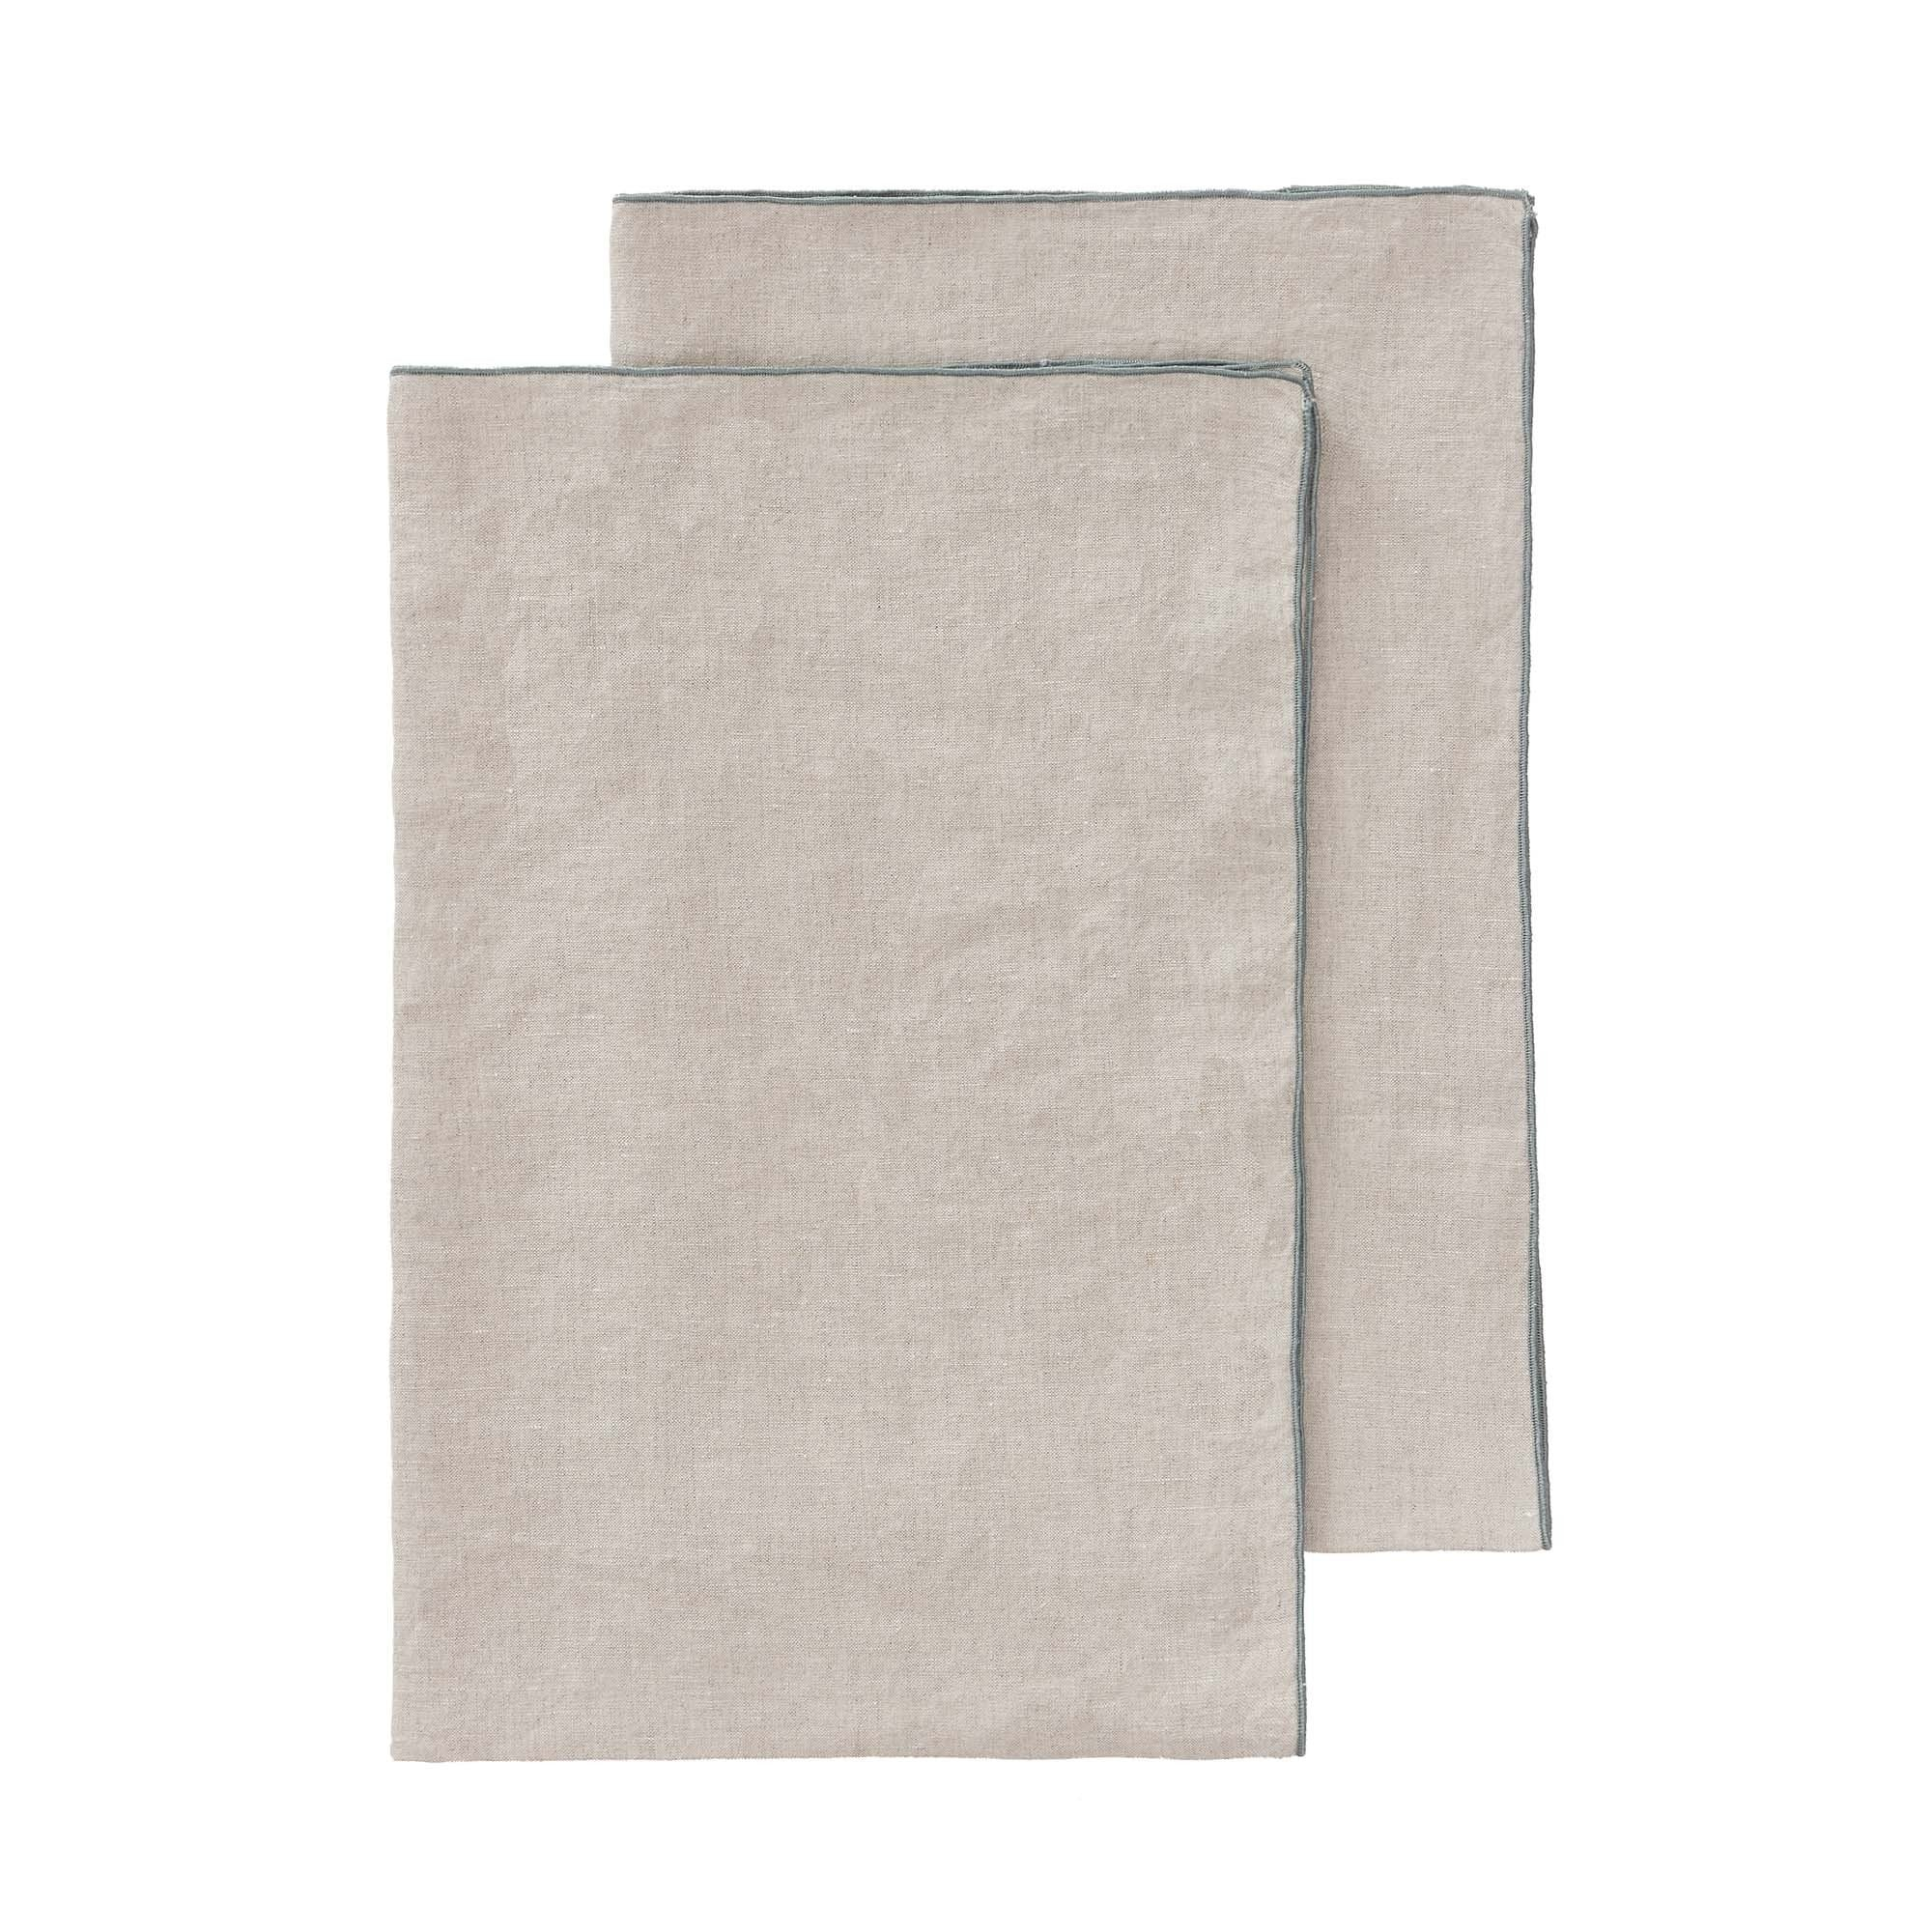 Alvalade tea towel, natural & green grey, 100% linen